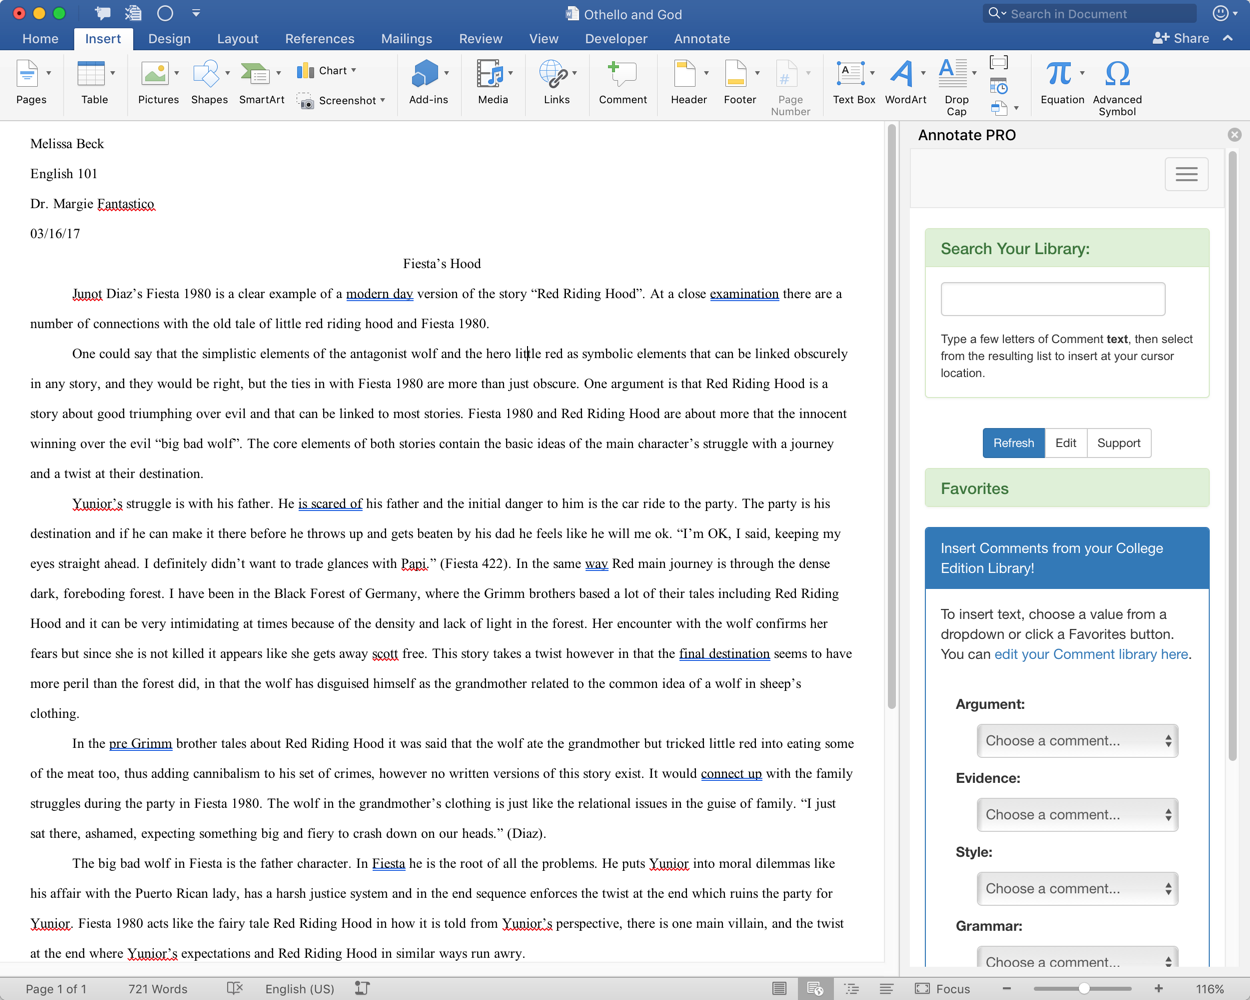 Annotate Pro For Microsoft Word 2016 Installs Through The Office Store €� A  Few Clicks, Sign Up For An Annotate Account, And You're Off!